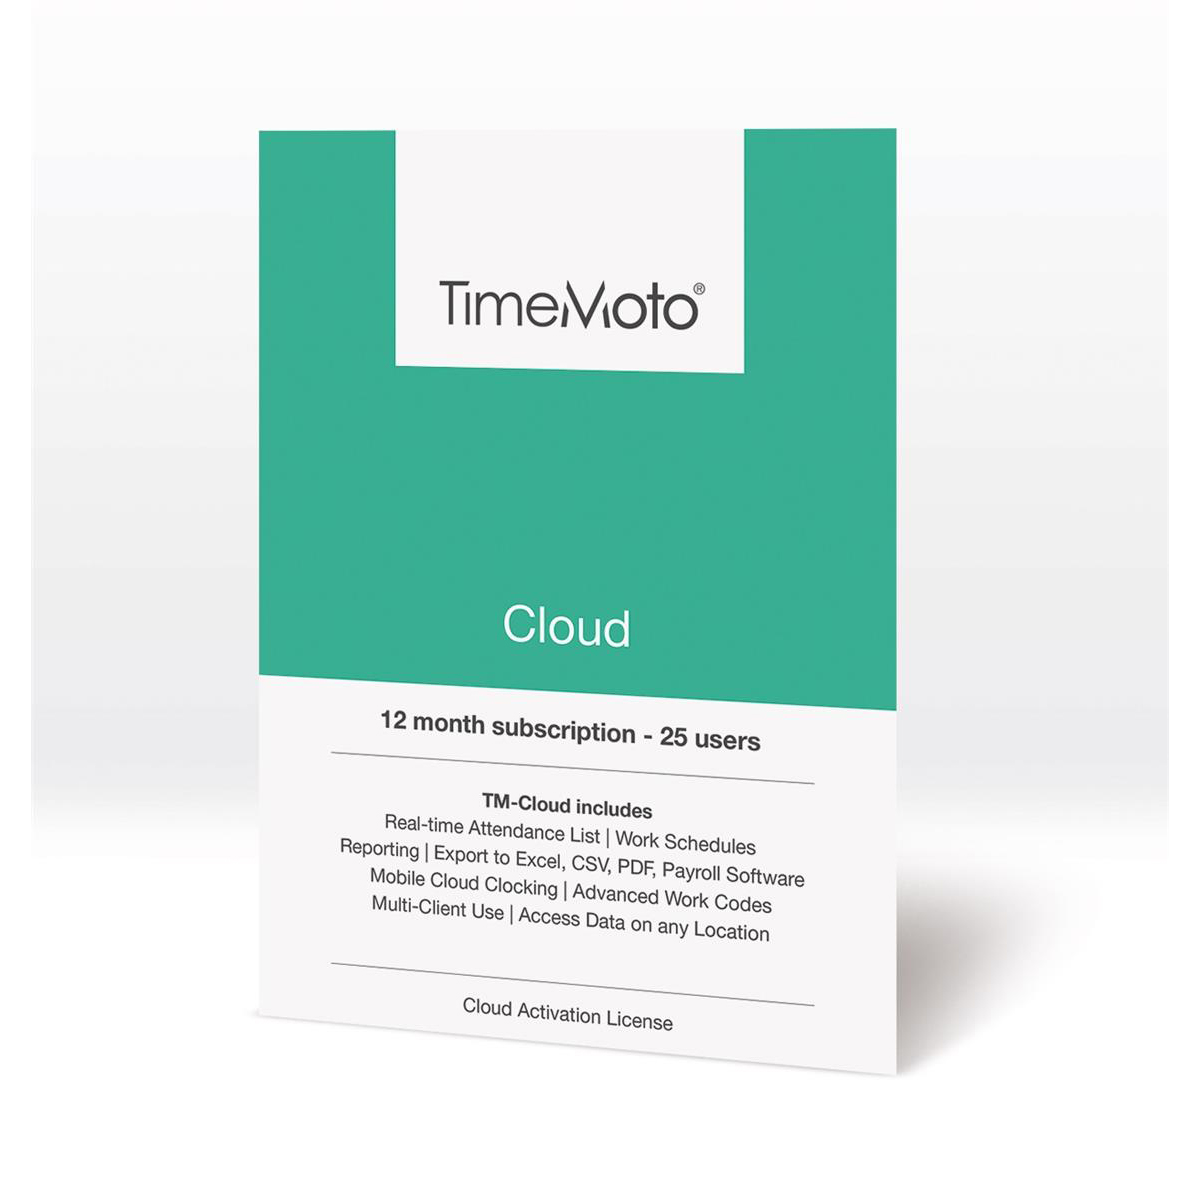 TimeMoto by Safescan Software TM Cloud Essentials for Time & Attendance System 25 Users Ref 139-0590